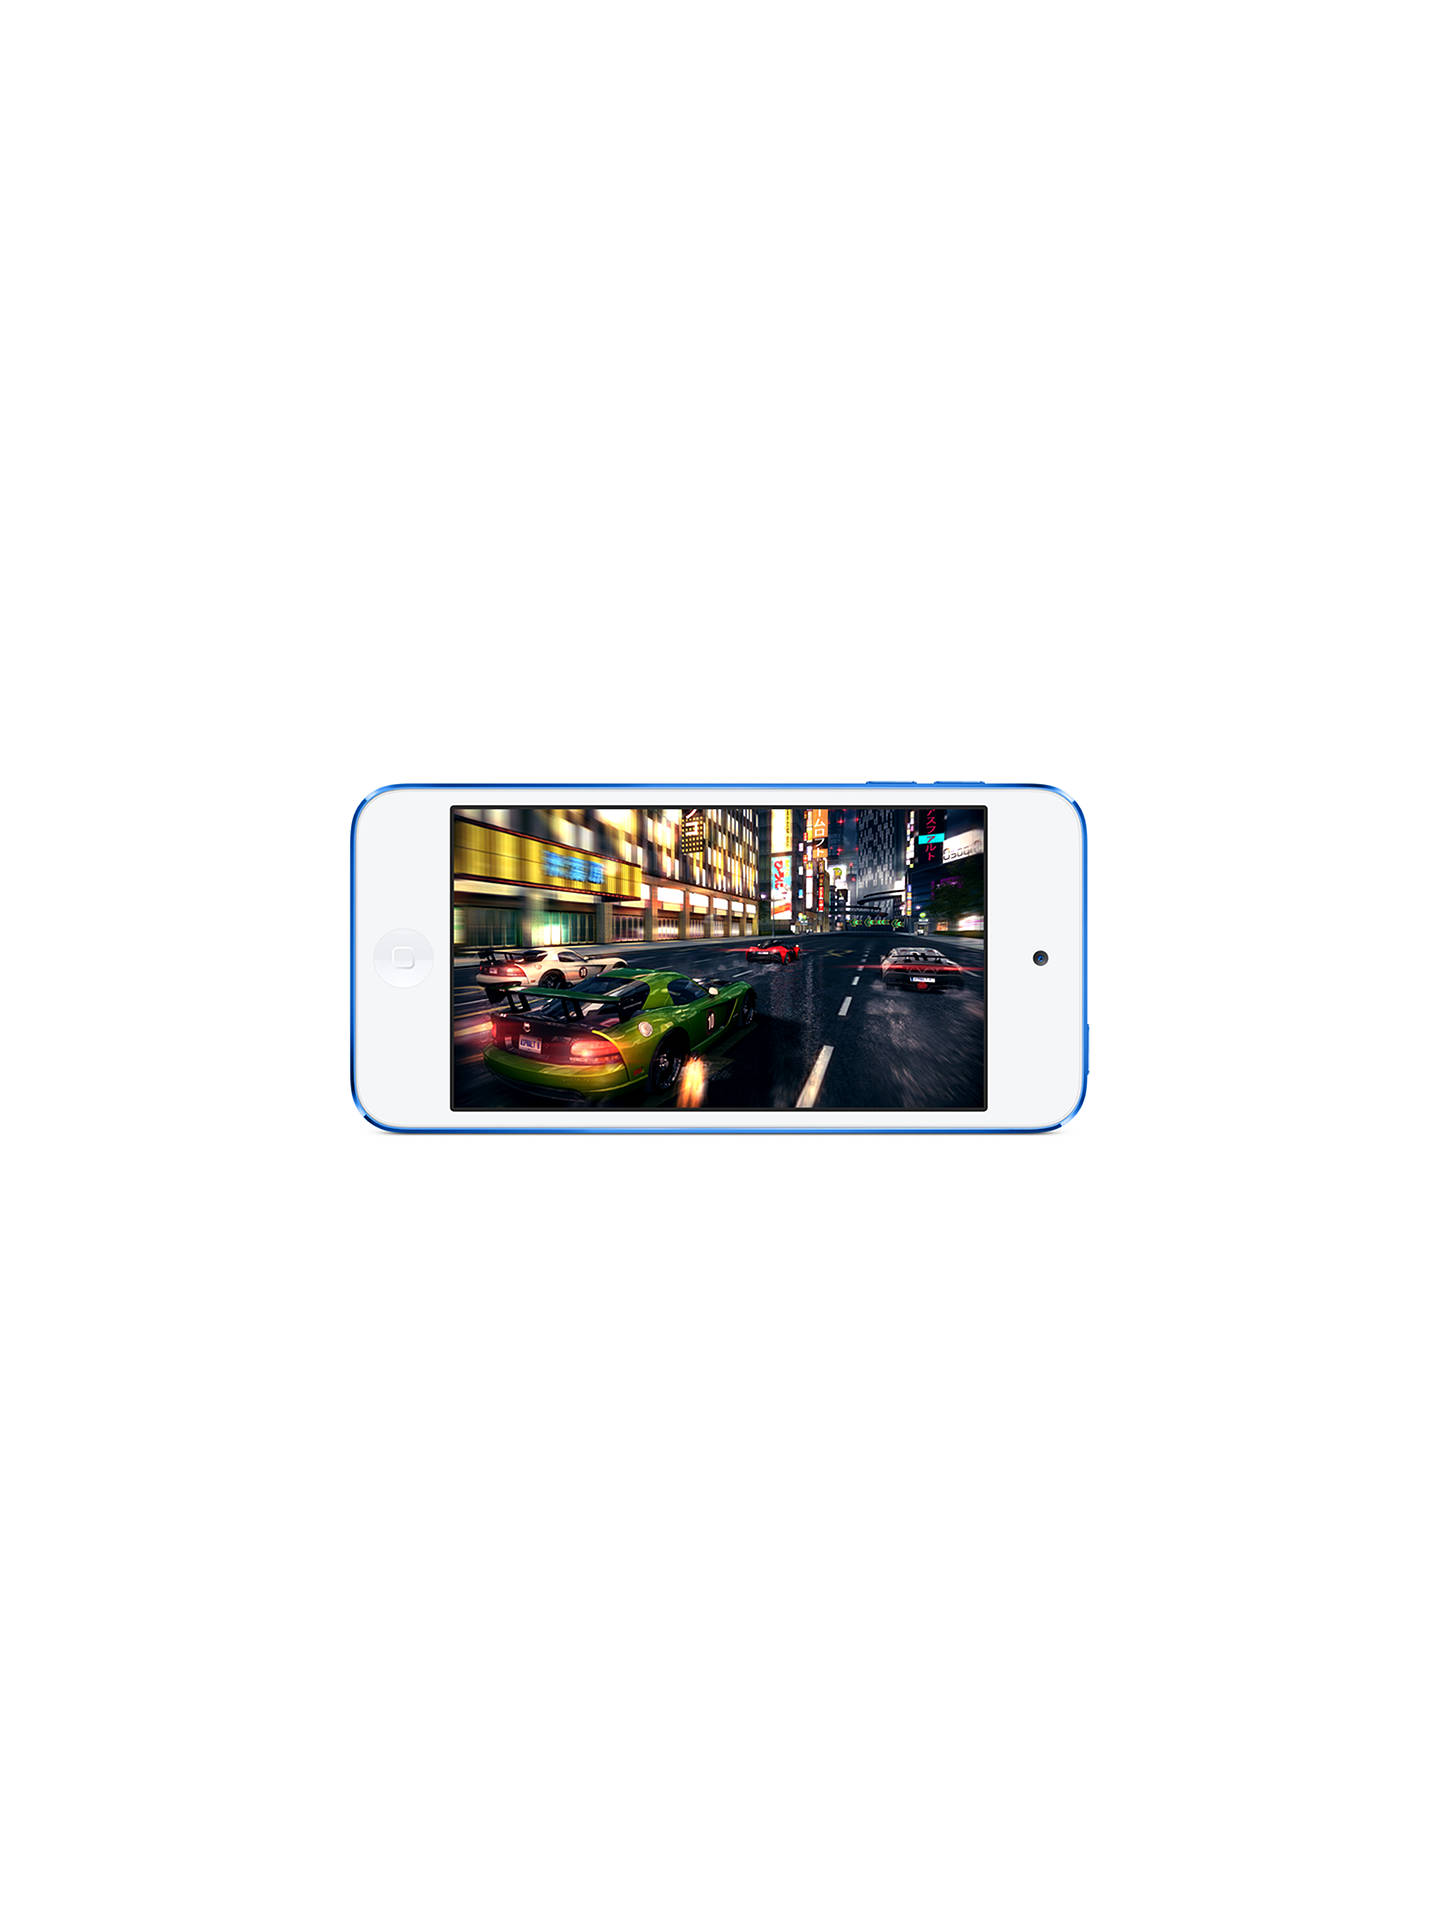 Apple Ipod Touch 128gb Blue At John Lewis Partners Iphone 7 Black Grs International Buyapple Online